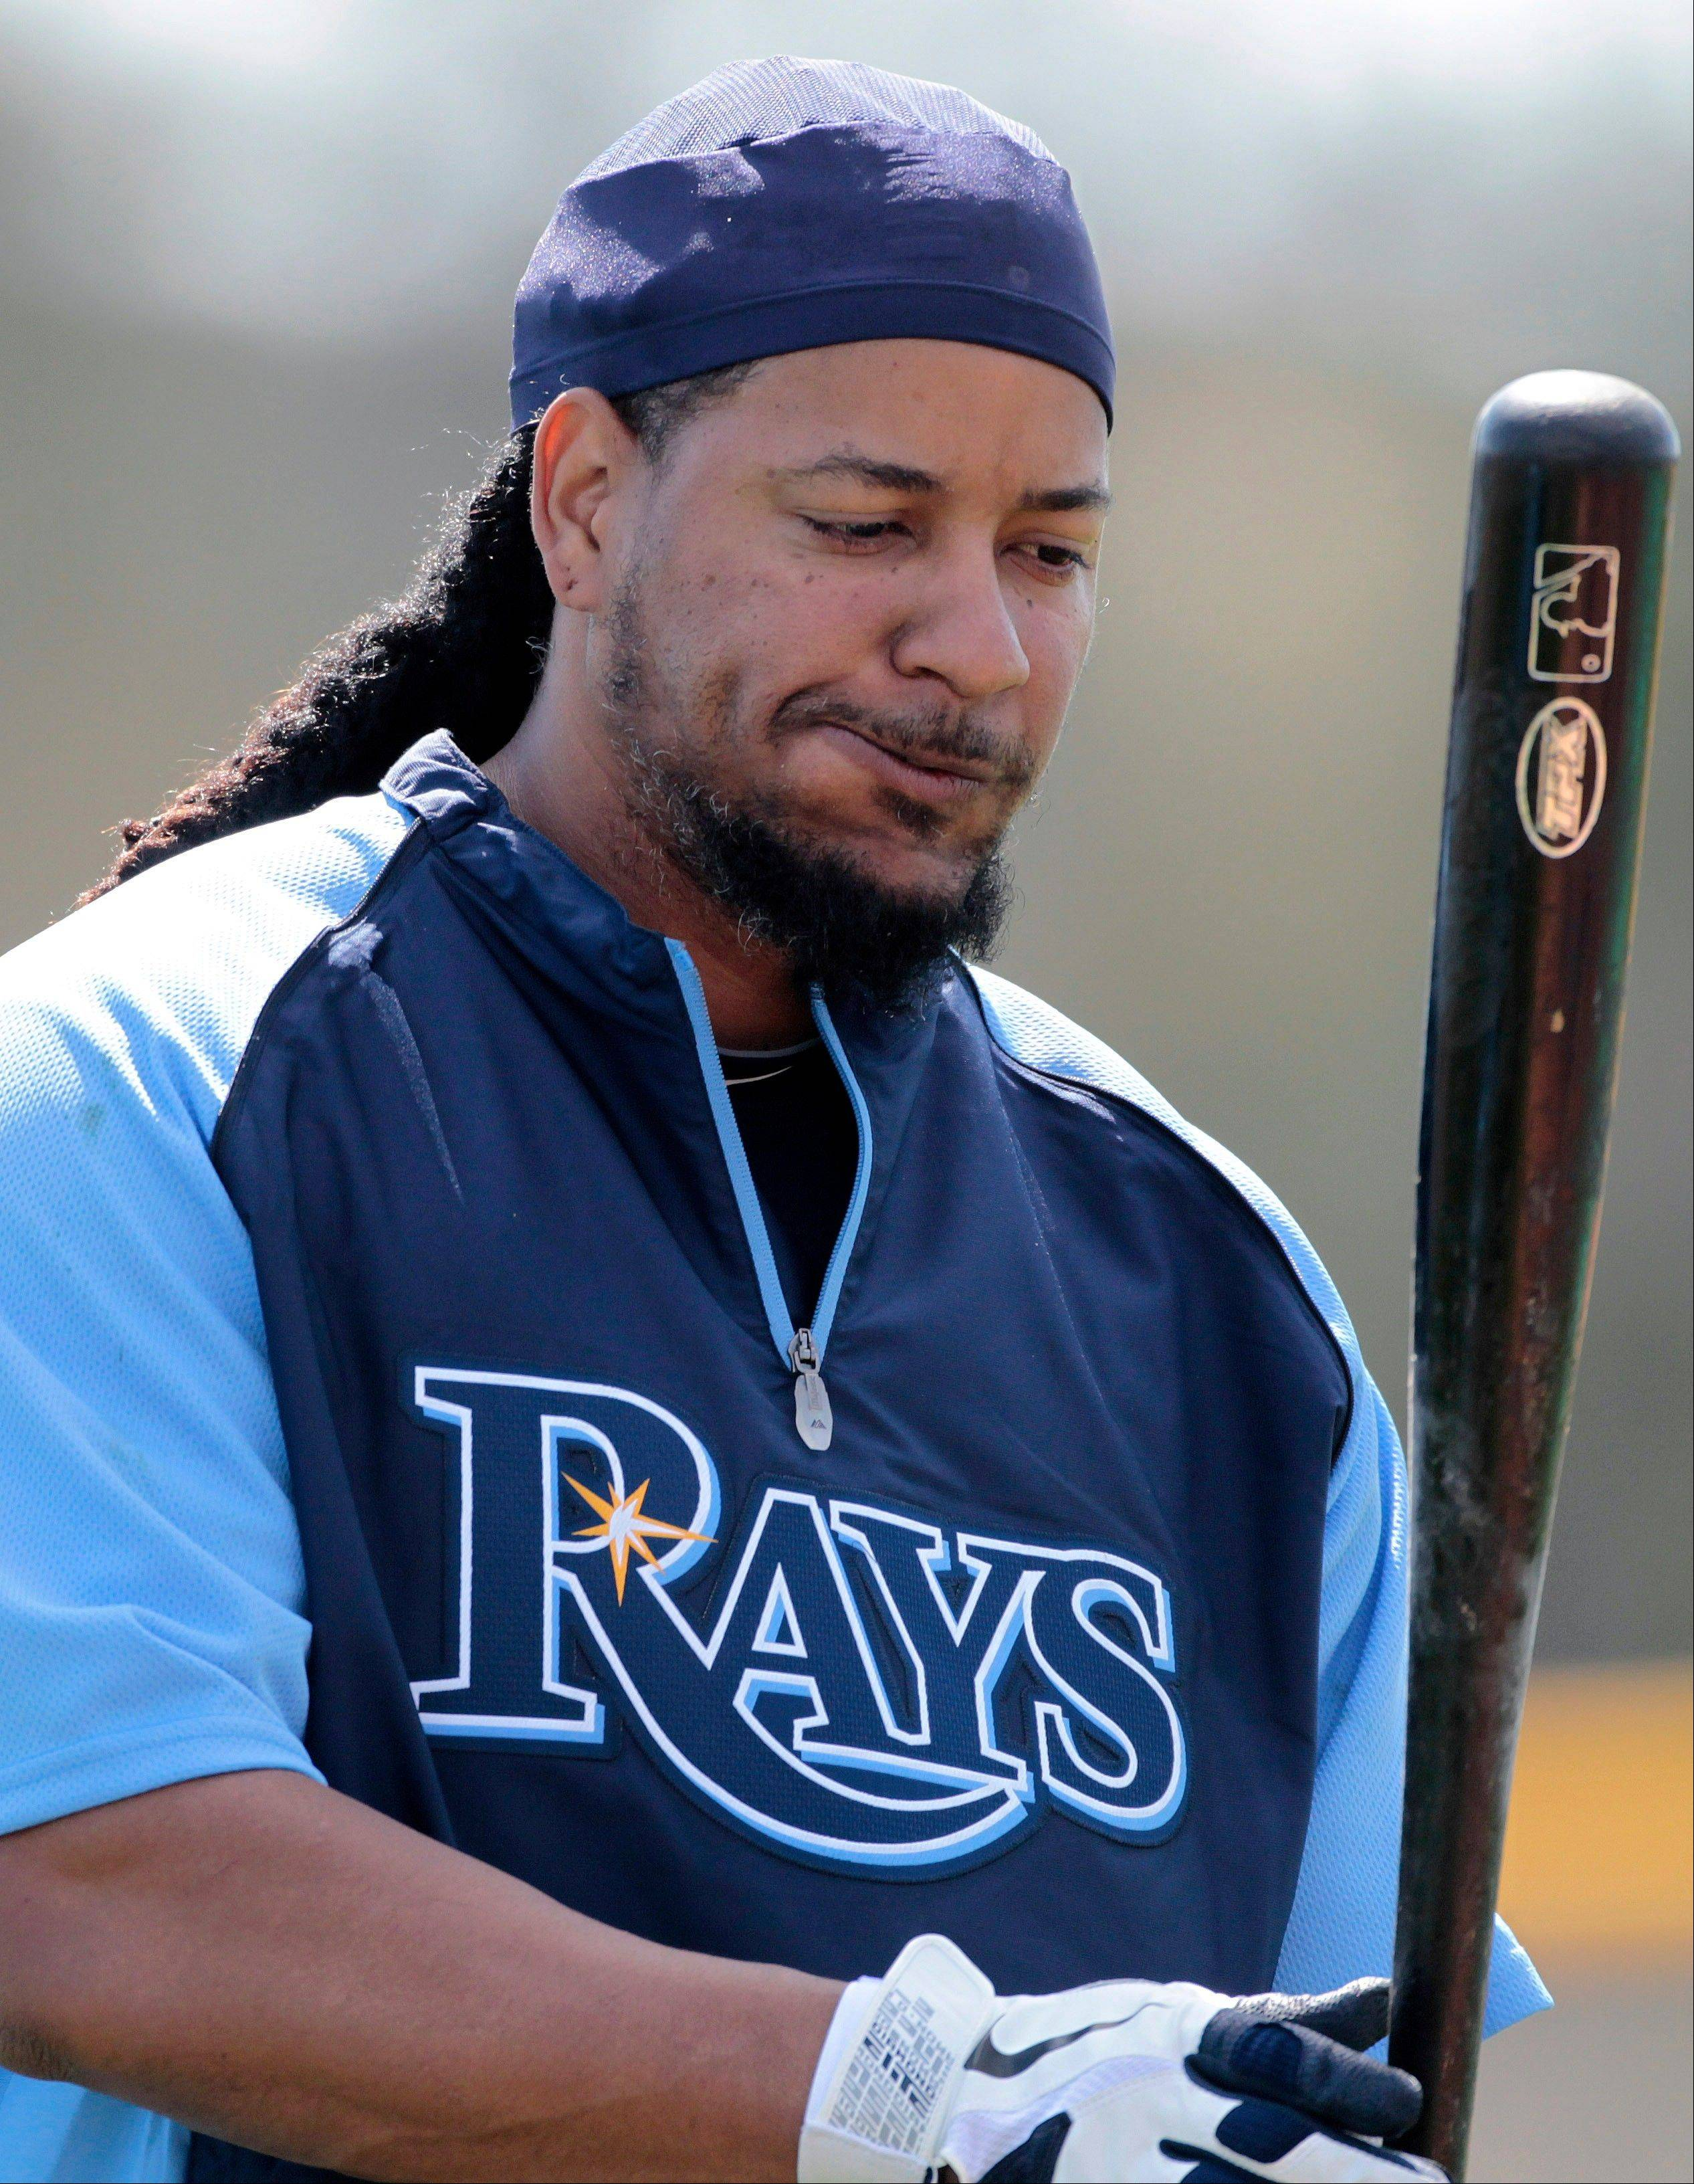 AP Source: Manny Ramirez positive test for testosterone